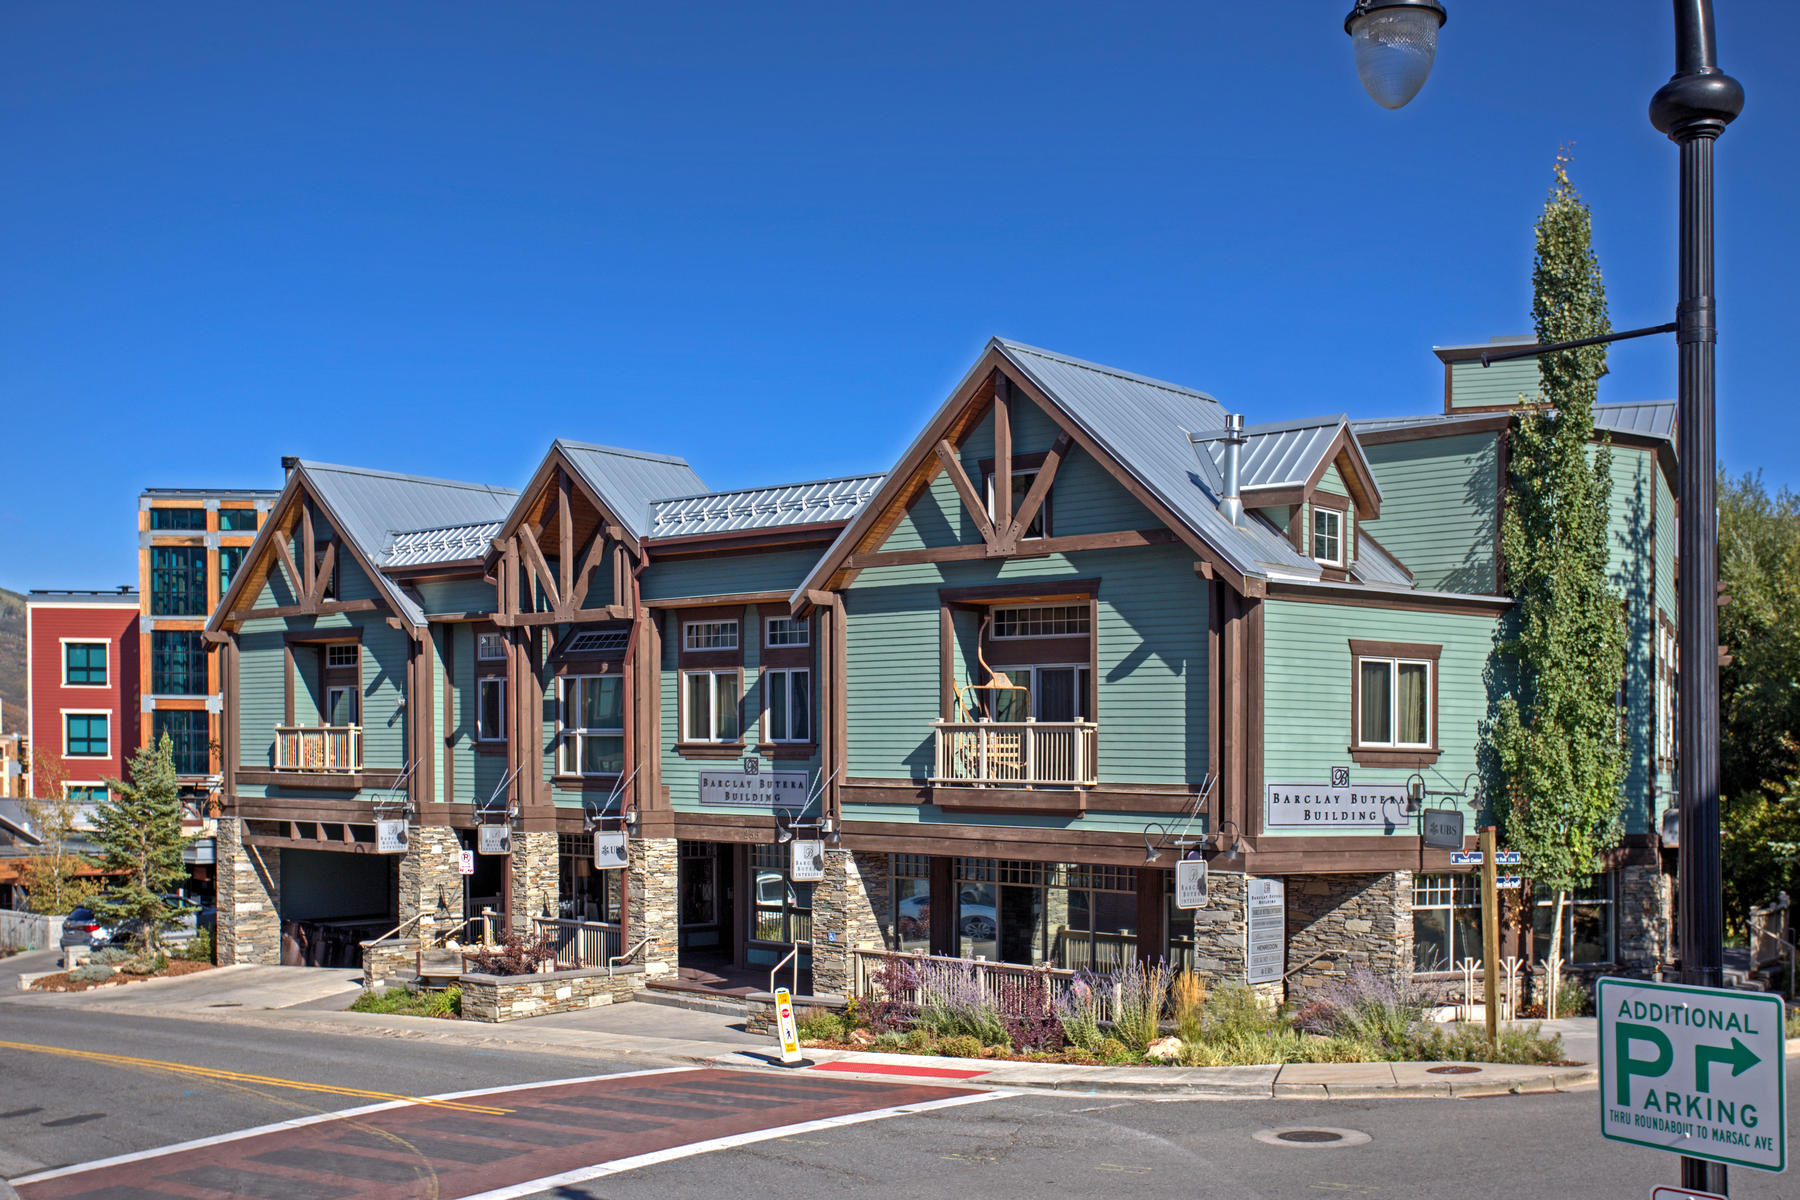 Condominium for Sale at The Perfect Old Town Location! 255 Heber Avenue #103 Park City, Utah, 84060 United States